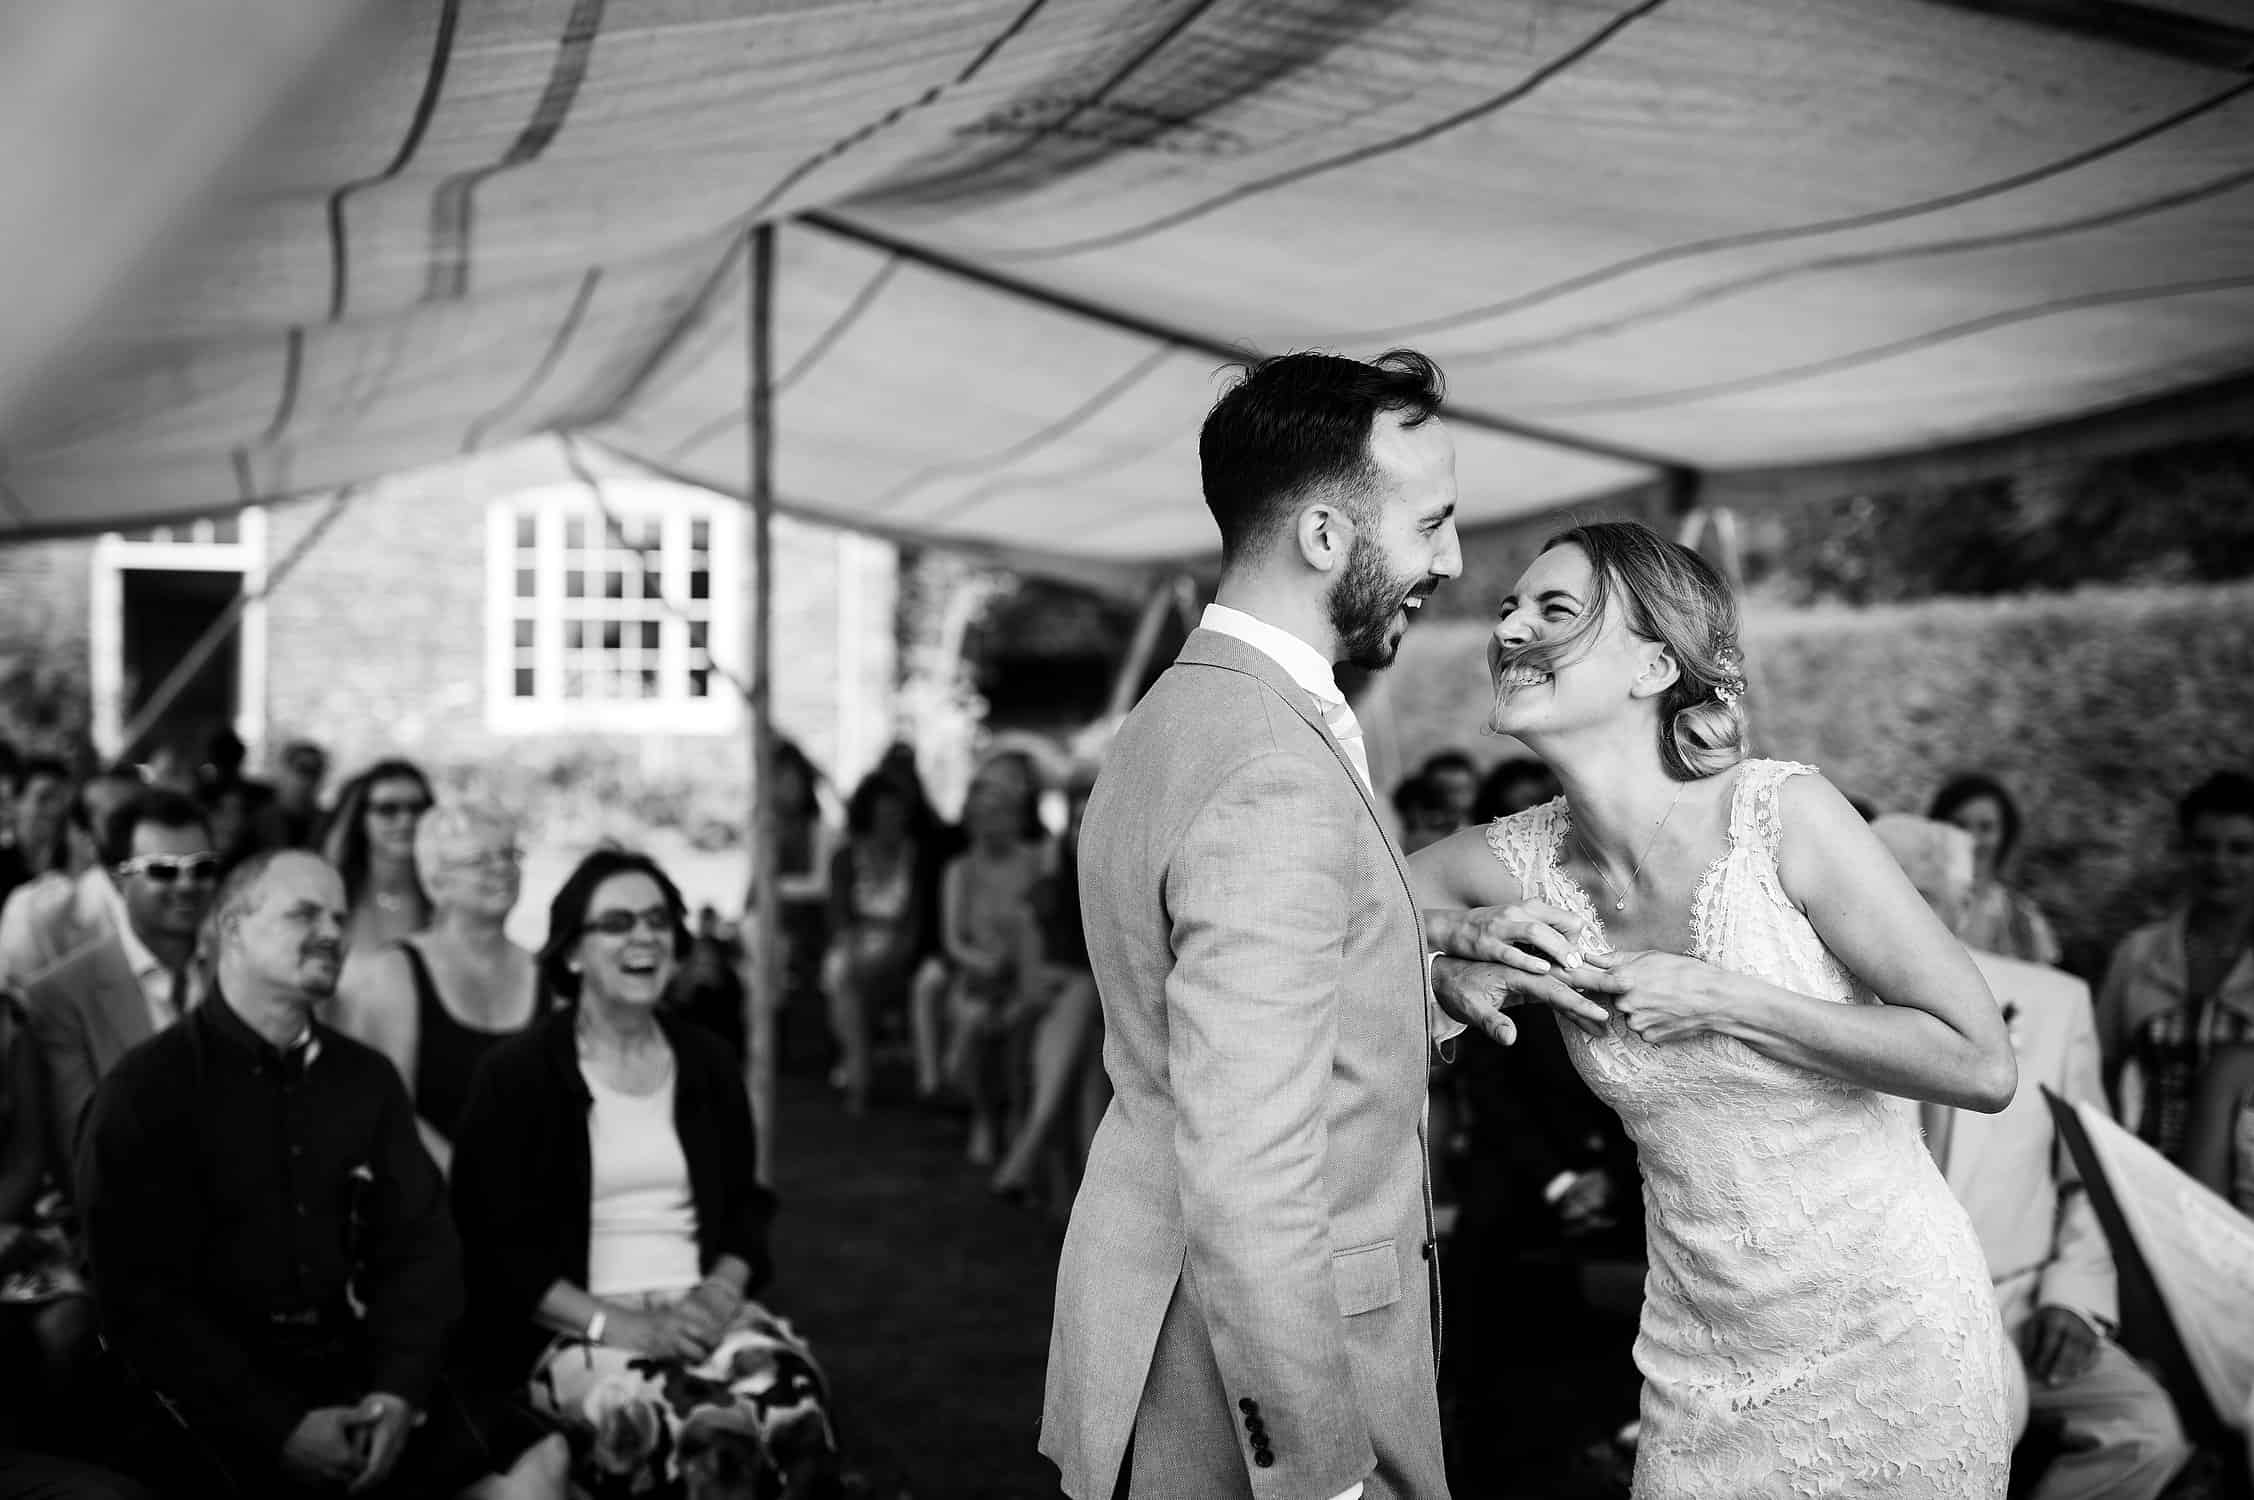 documentary wedding photography - what exactly is it?